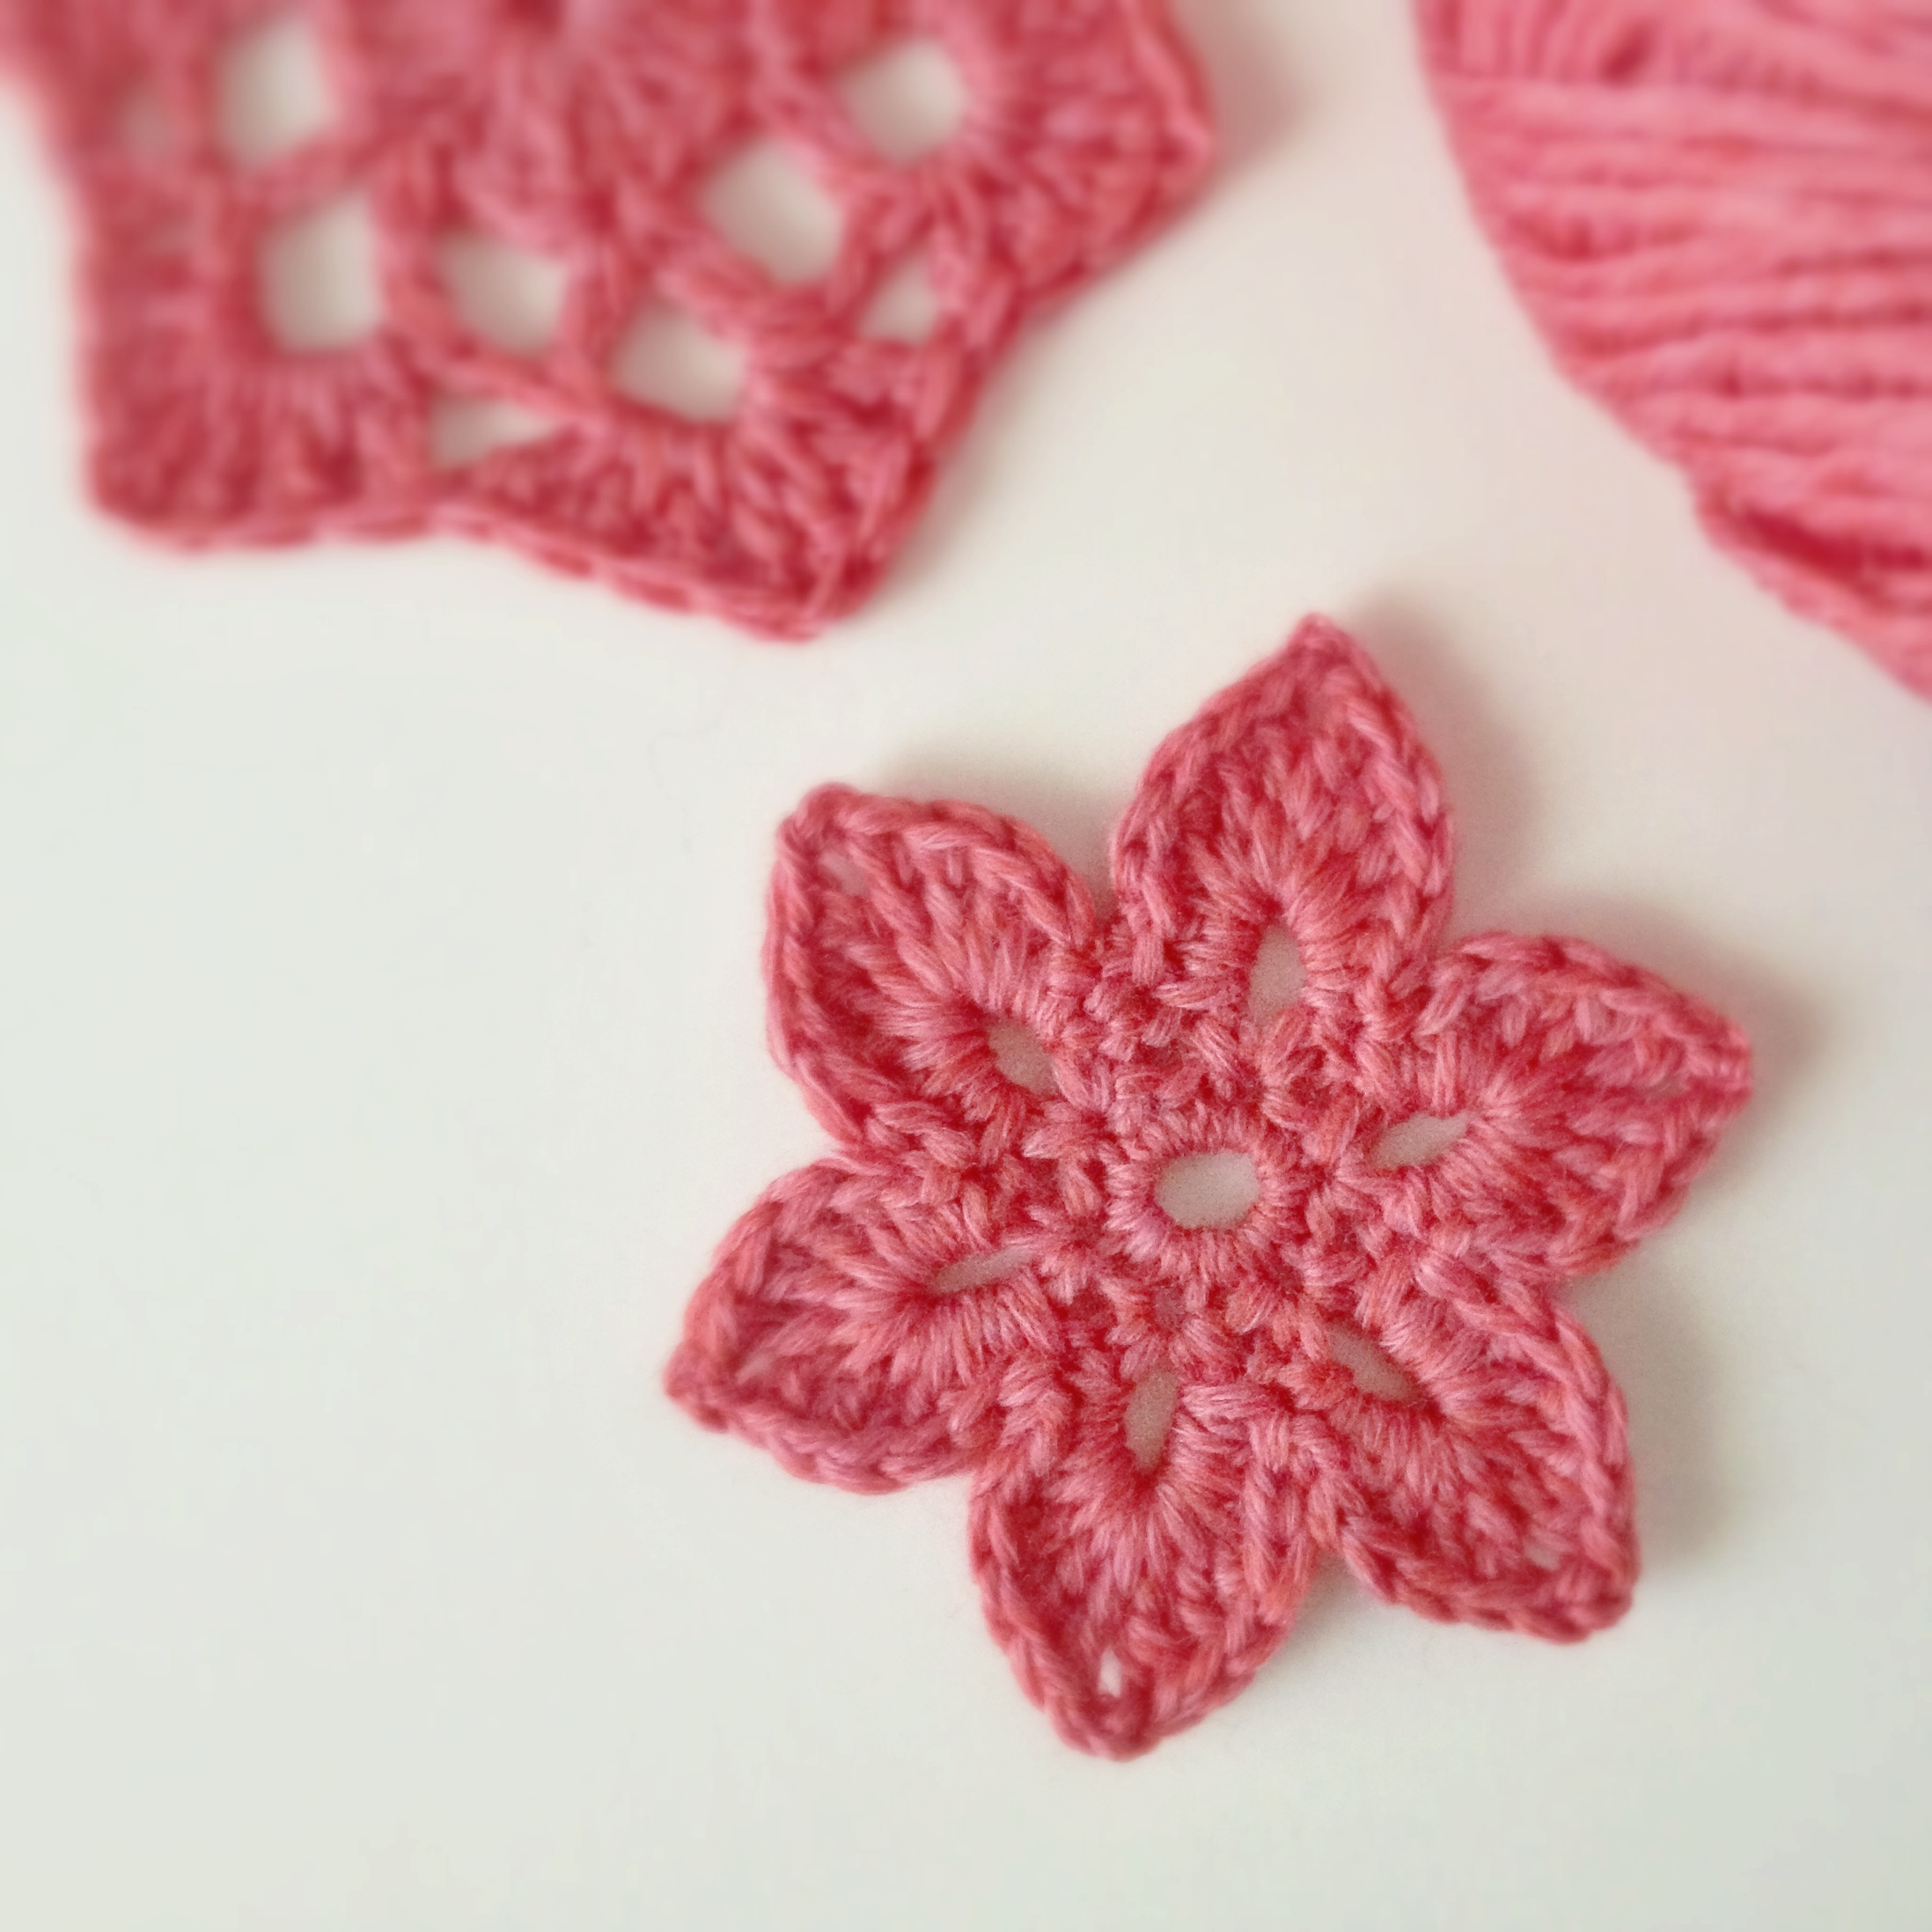 Crochet Patterns For Motifs : Tiny Crochet Flower Motif Home